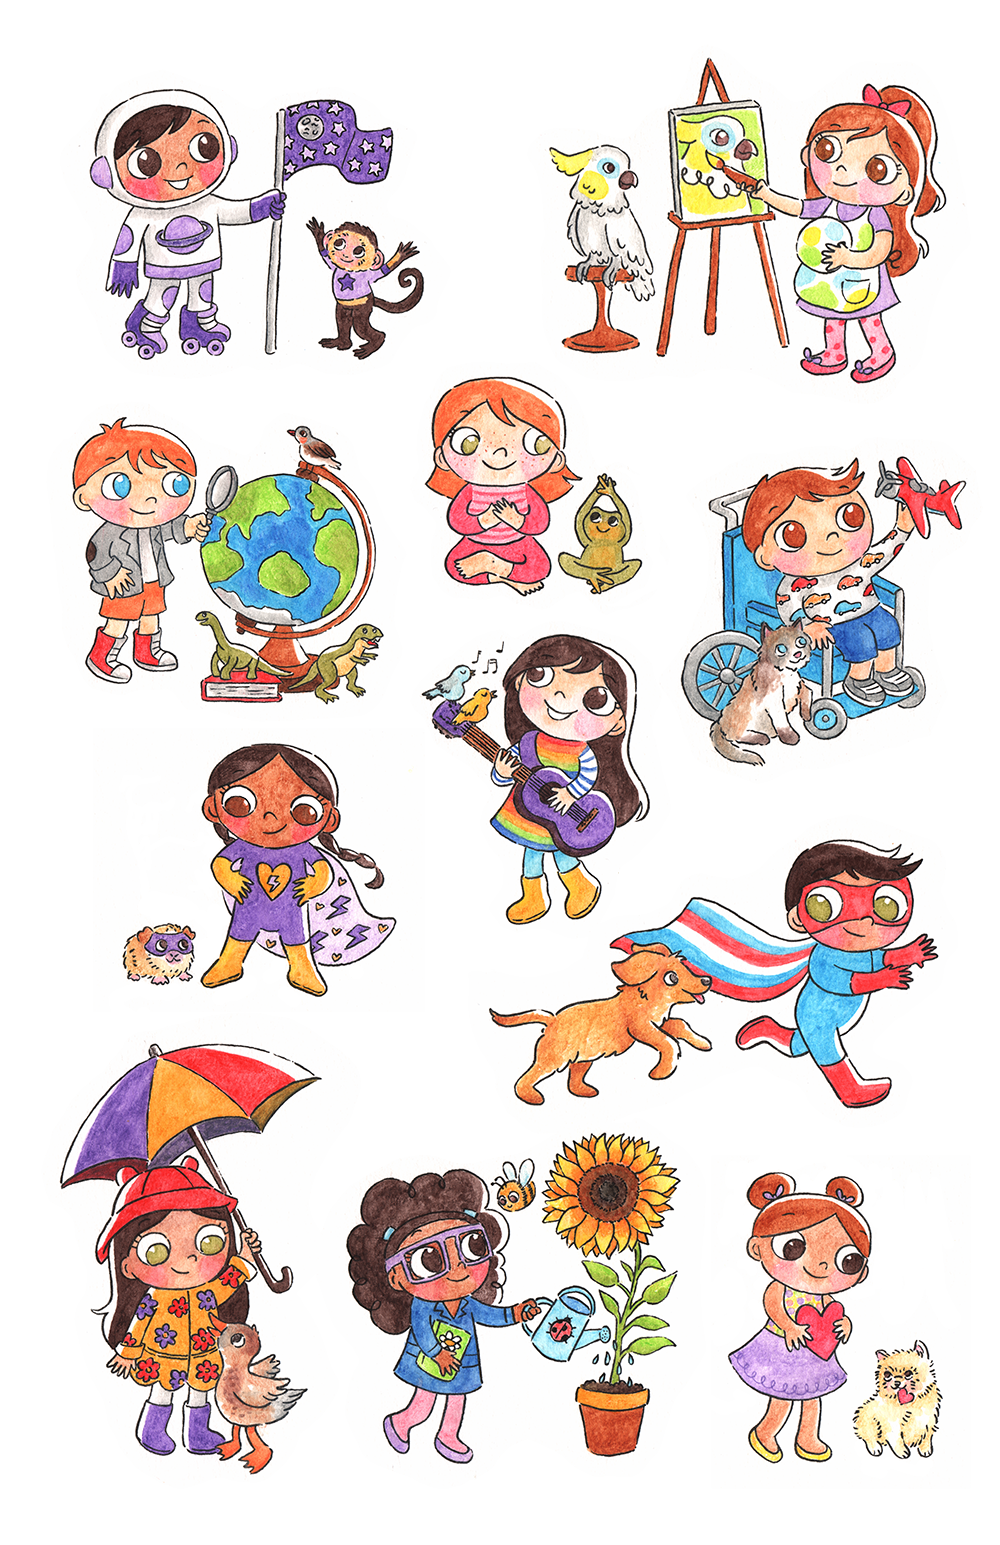 11 of the 29 happy hills kids! From left to right, top to bottom: Abe and his Capuchin monkey, Neptune Cricket and her cockatoo, Rockwell Desmond and his finch, Earhart Queenie and her frog, Fritzi Graham and his Ragdoll cat, Herbie Rainbow and her gerbil, Ororo Jin and her songbirds, Mavis & Melody Ellis and his Golden Retriever dog, Clark Vida and her duck, Sunny Bonnie and her bumblebee, Hydrangea (Hydie) Lulu and her Pomeranian dog, Valentine  Watercolor pencils, 2018.